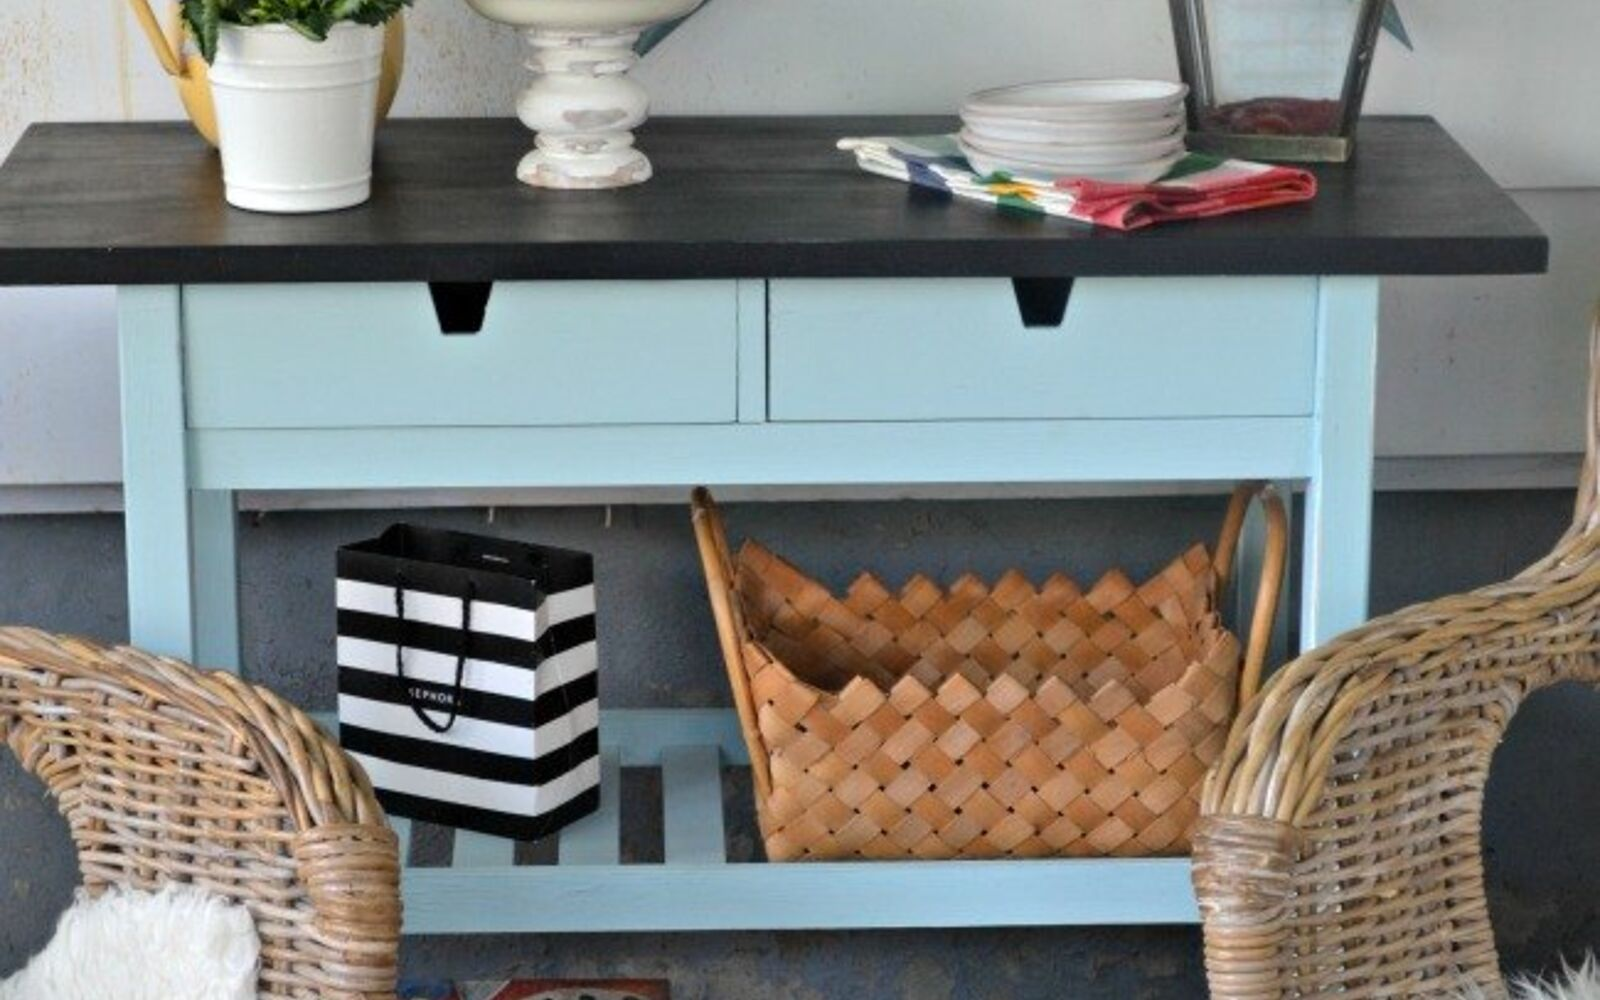 s 31 update ideas to make your kitchen look fabulous, Or add a small portable kitchen island